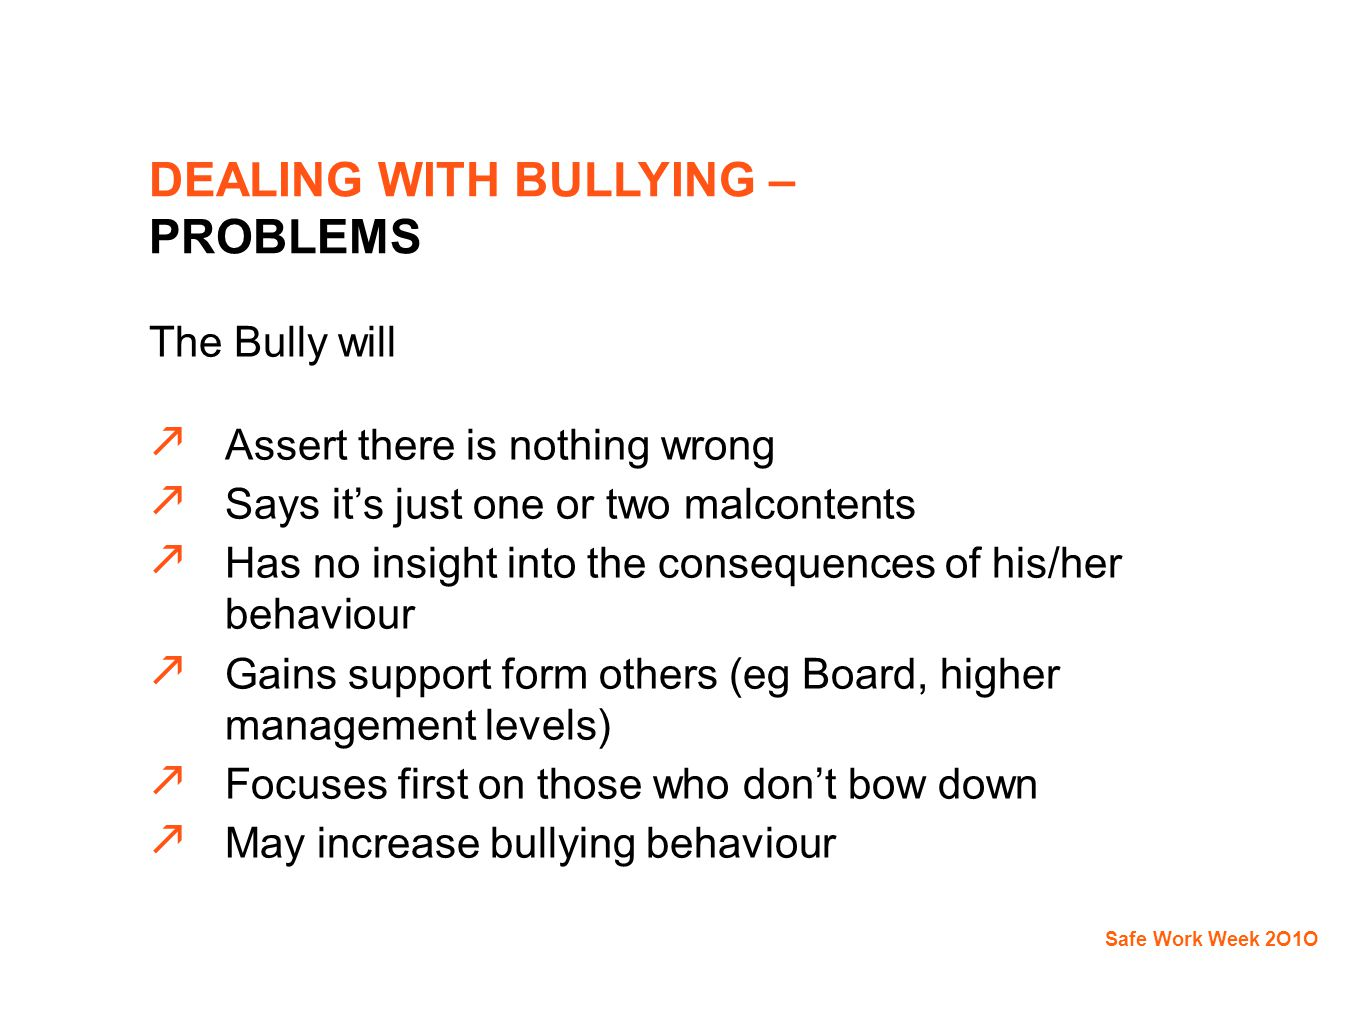 The Bully will  Assert there is nothing wrong  Says it's just one or two malcontents  Has no insight into the consequences of his/her behaviour  Gains support form others (eg Board, higher management levels)  Focuses first on those who don't bow down  May increase bullying behaviour Safe Work Week 2O1O DEALING WITH BULLYING – PROBLEMS